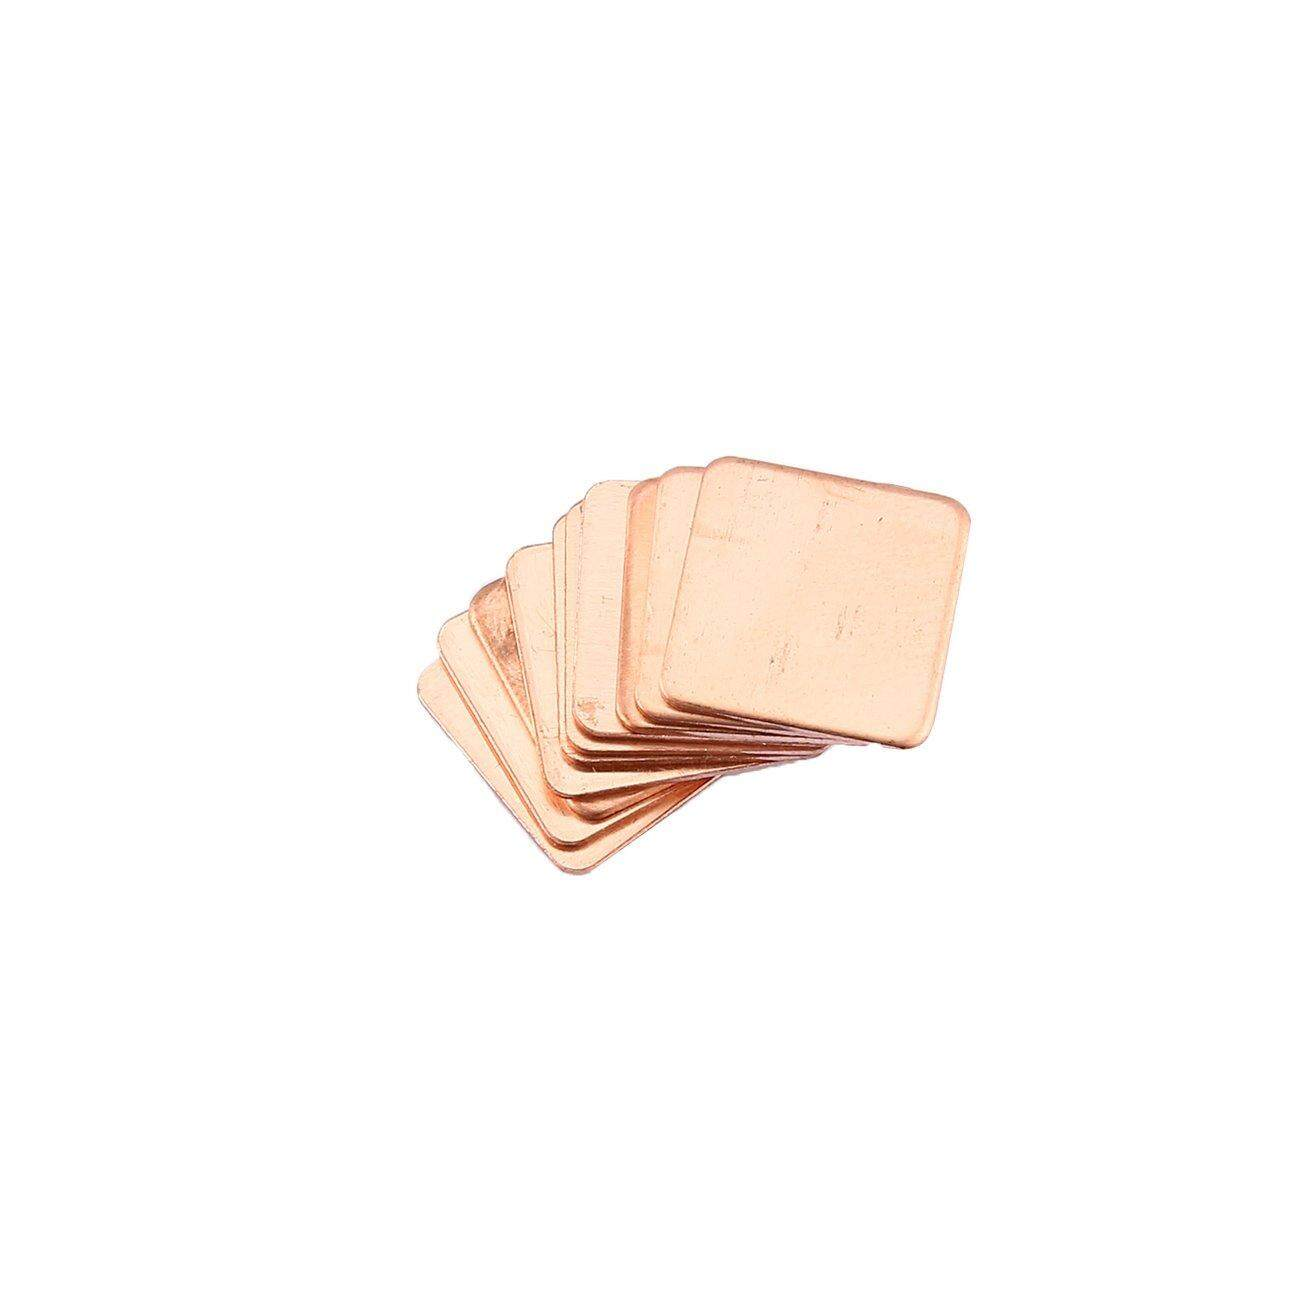 Hot Sales 10pcs 0.8mm Pure Copper Heatsink Shim Thermal Pad for Laptop Graphics Card